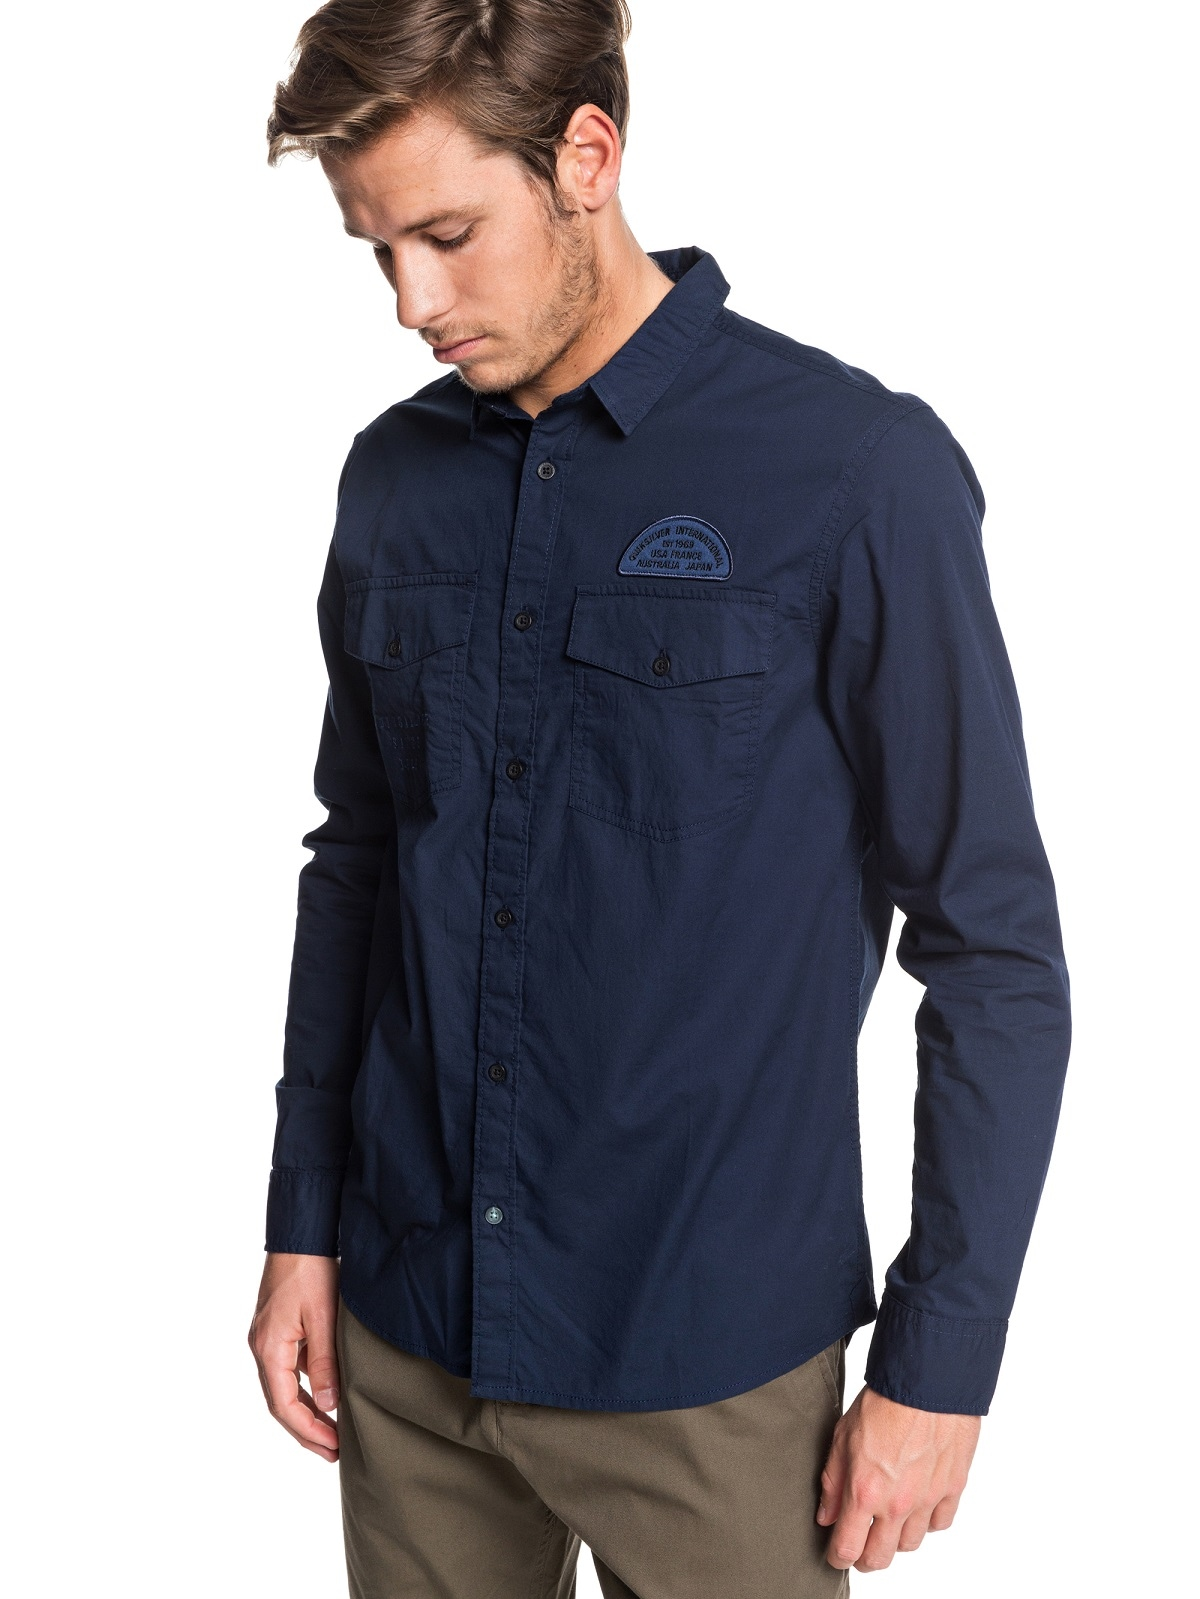 Men's shirt QUIKSILVER TRIPSTERLS